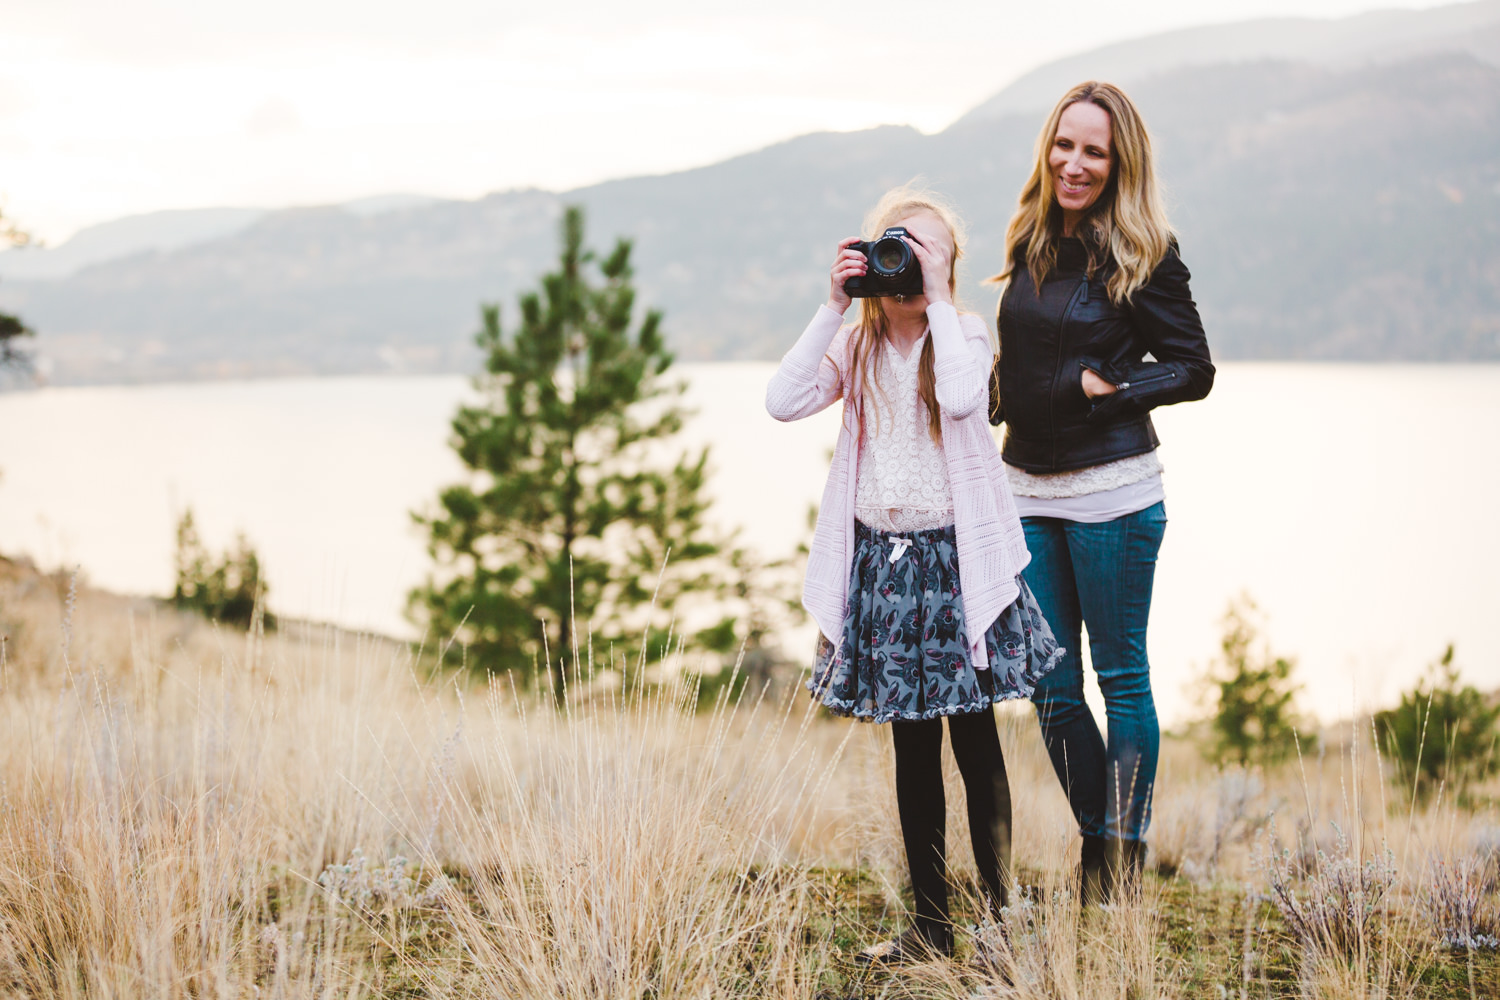 knox-mountain-family-photos-knox-mountain-photographer-knoz mountain-kelowna-bc-knox-moutain-mother-daughter-photography-by-julie-dorge (27 of 27).jpg